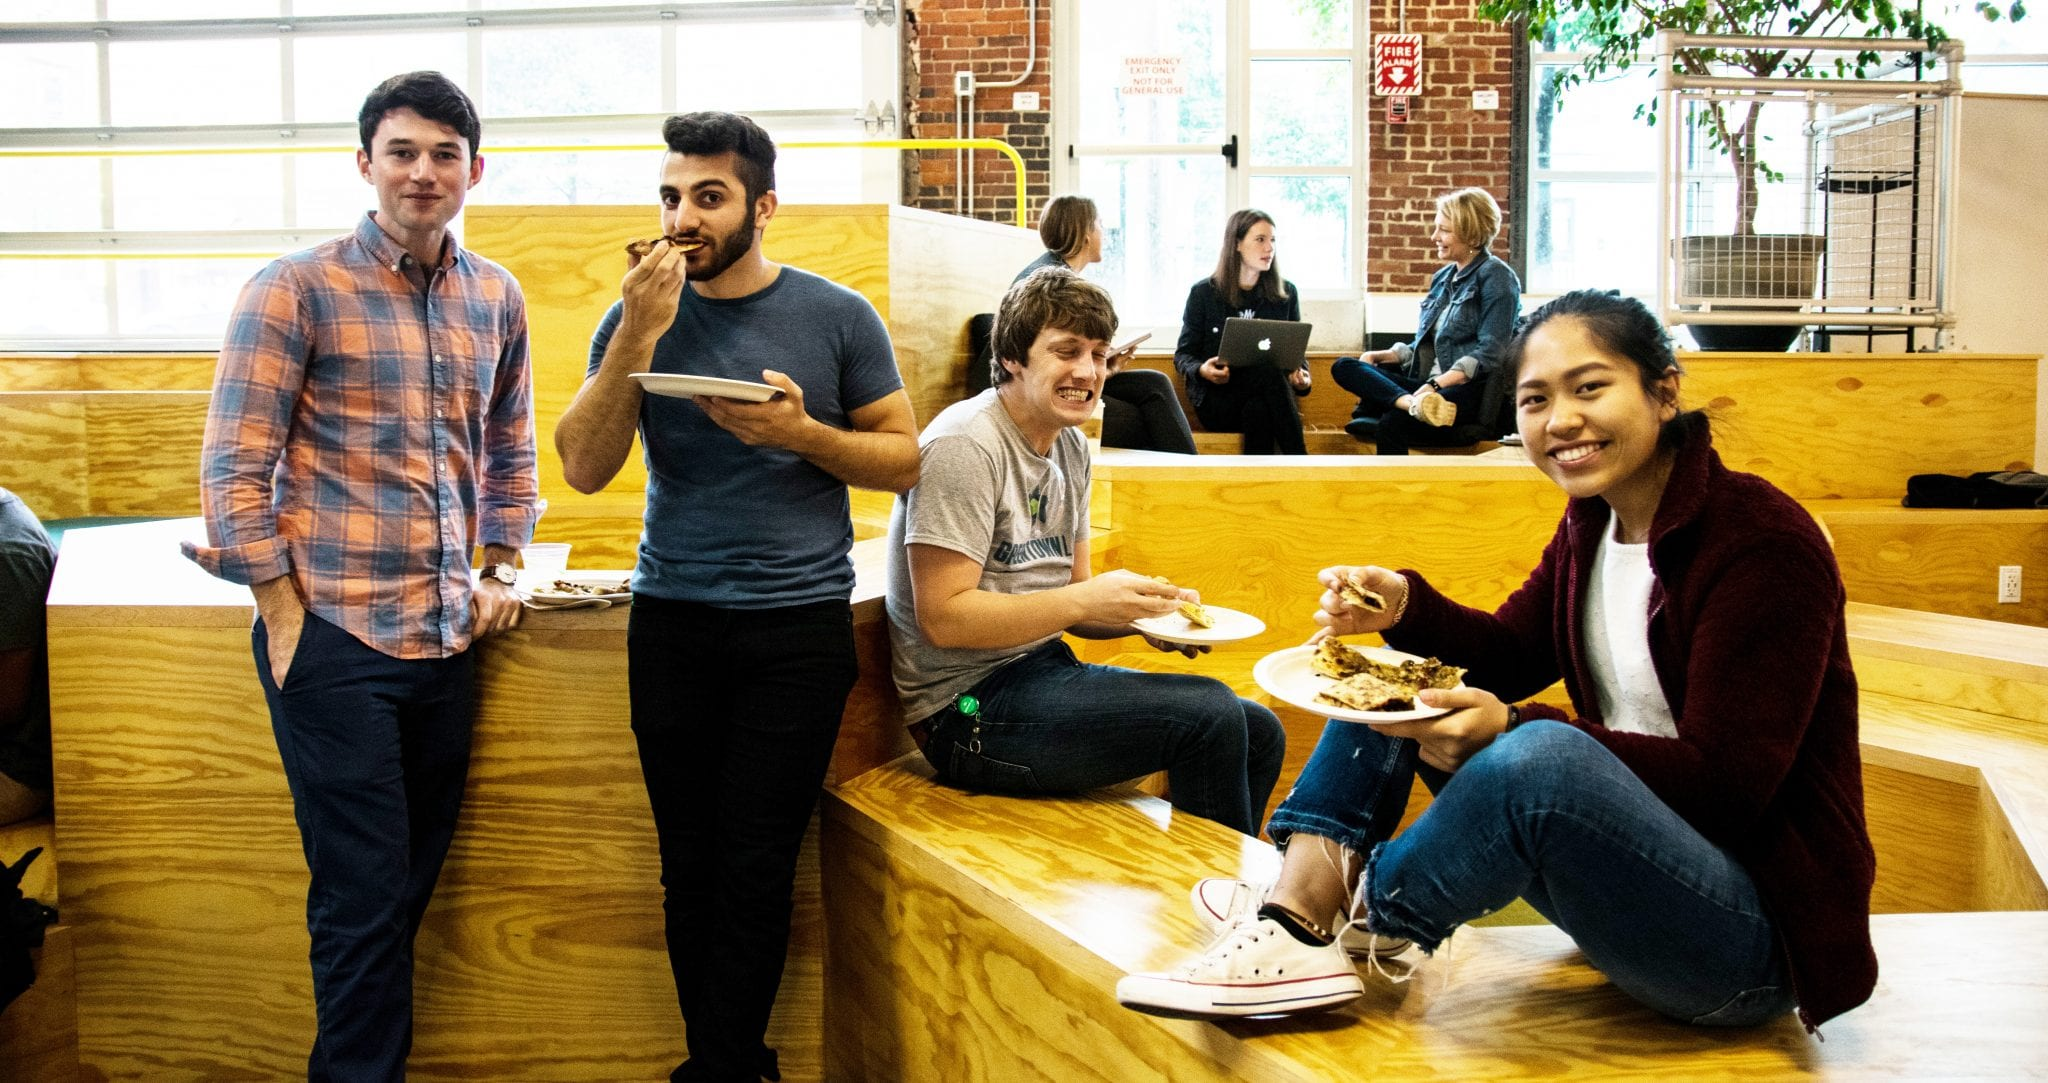 greentown tufts students smiling and eating